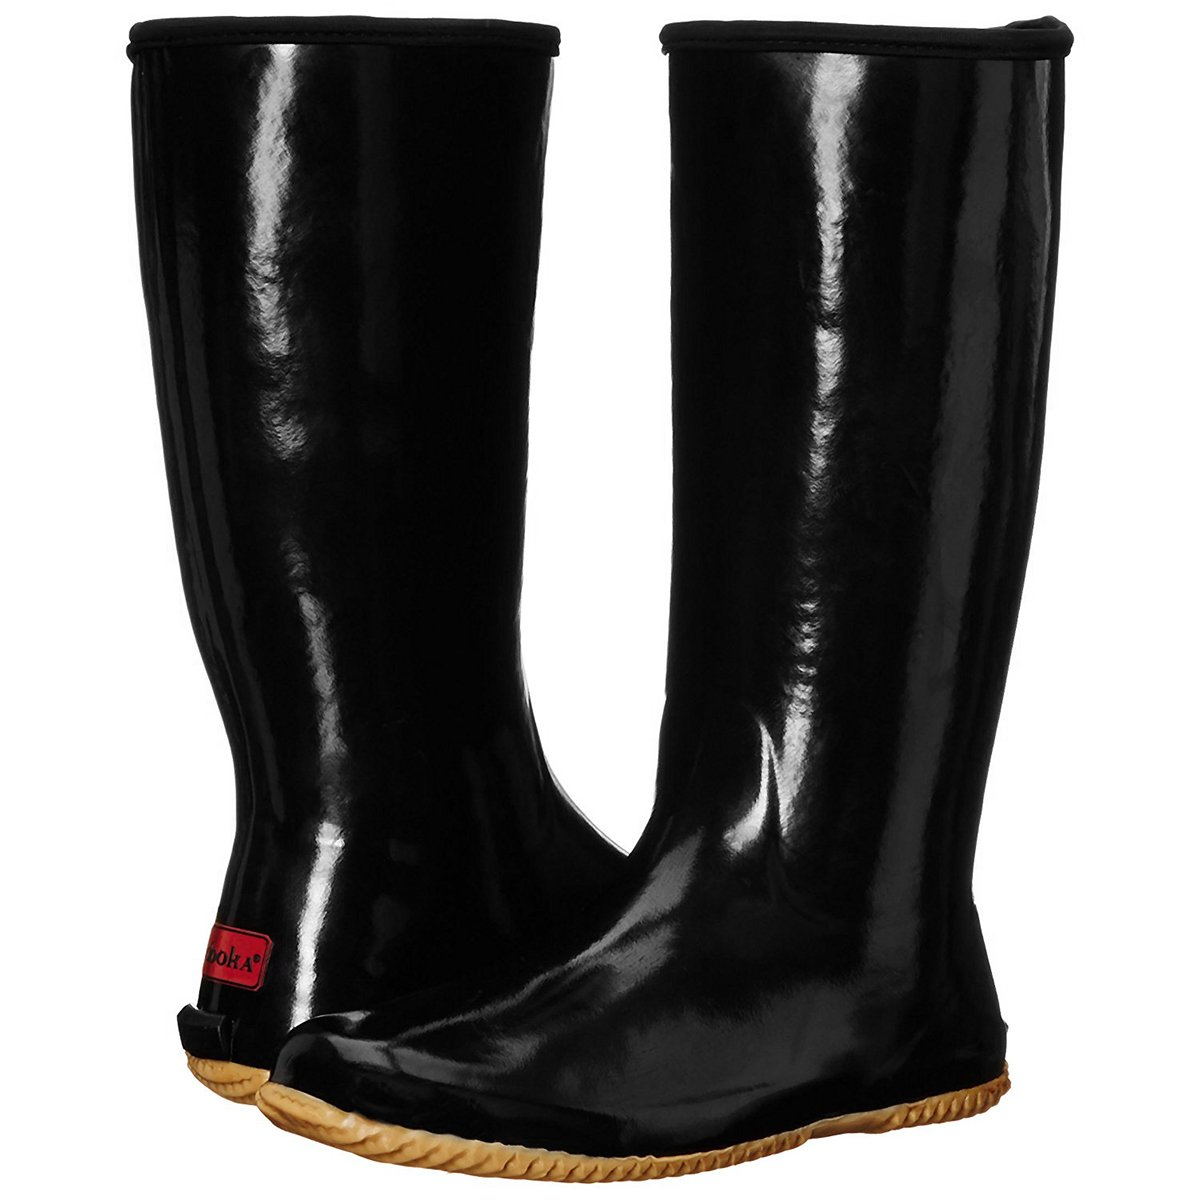 Chooka Women's Packable Rain Boot, Black, 9 M US